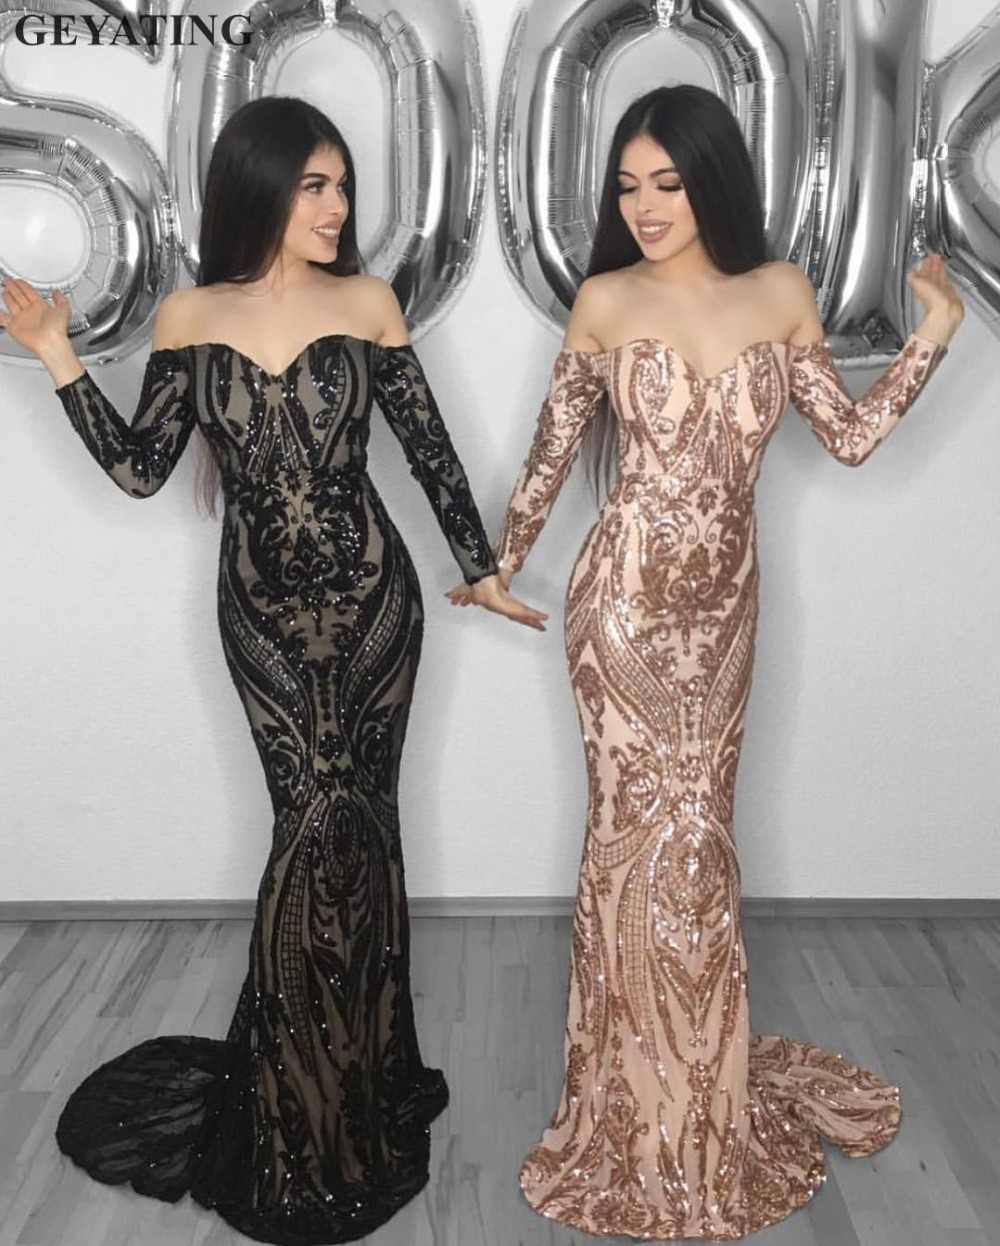 ea71e3a5 Black Sequins Mermaid Arabic Evening Dress Long Sleeves Off the Shoulder  Rose Gold Embroidery Dubai Prom